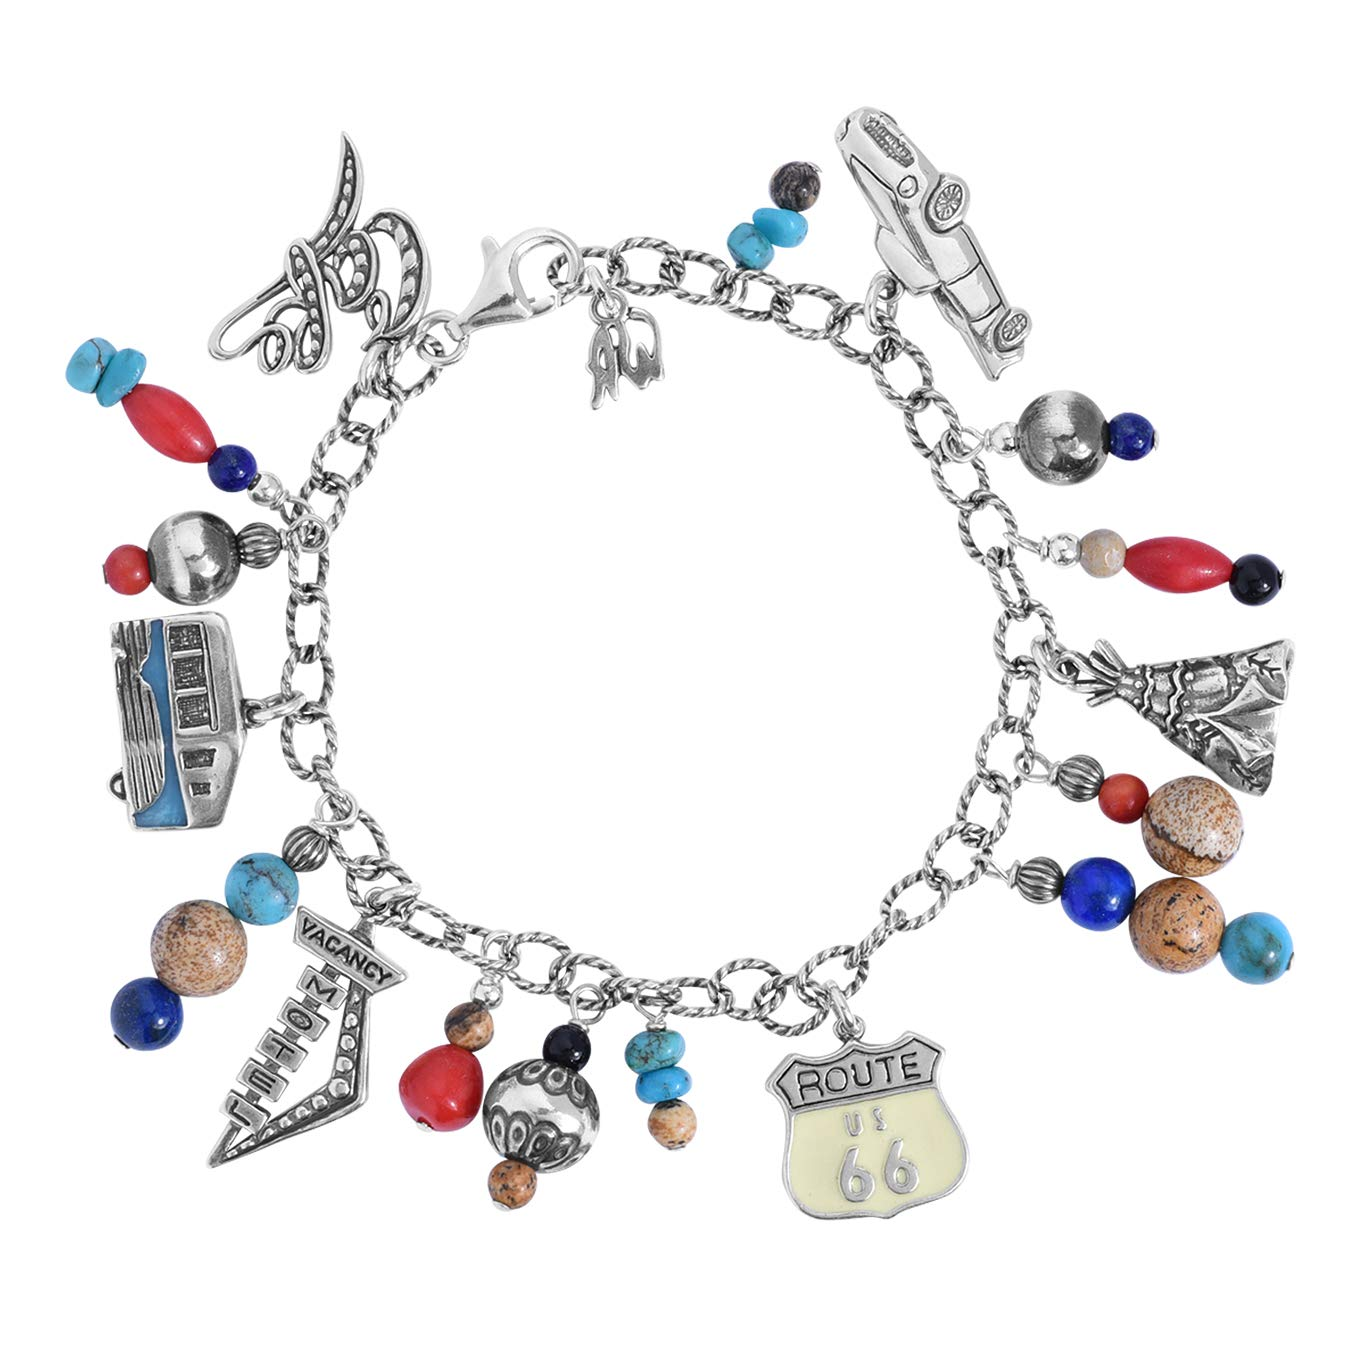 Sterling Silver Route 66 Multicolor Semi-Precious Bead Charm Chain Bracelet, Average (Fits 6-3/8'' to 6-3/4'') by American West (Image #1)